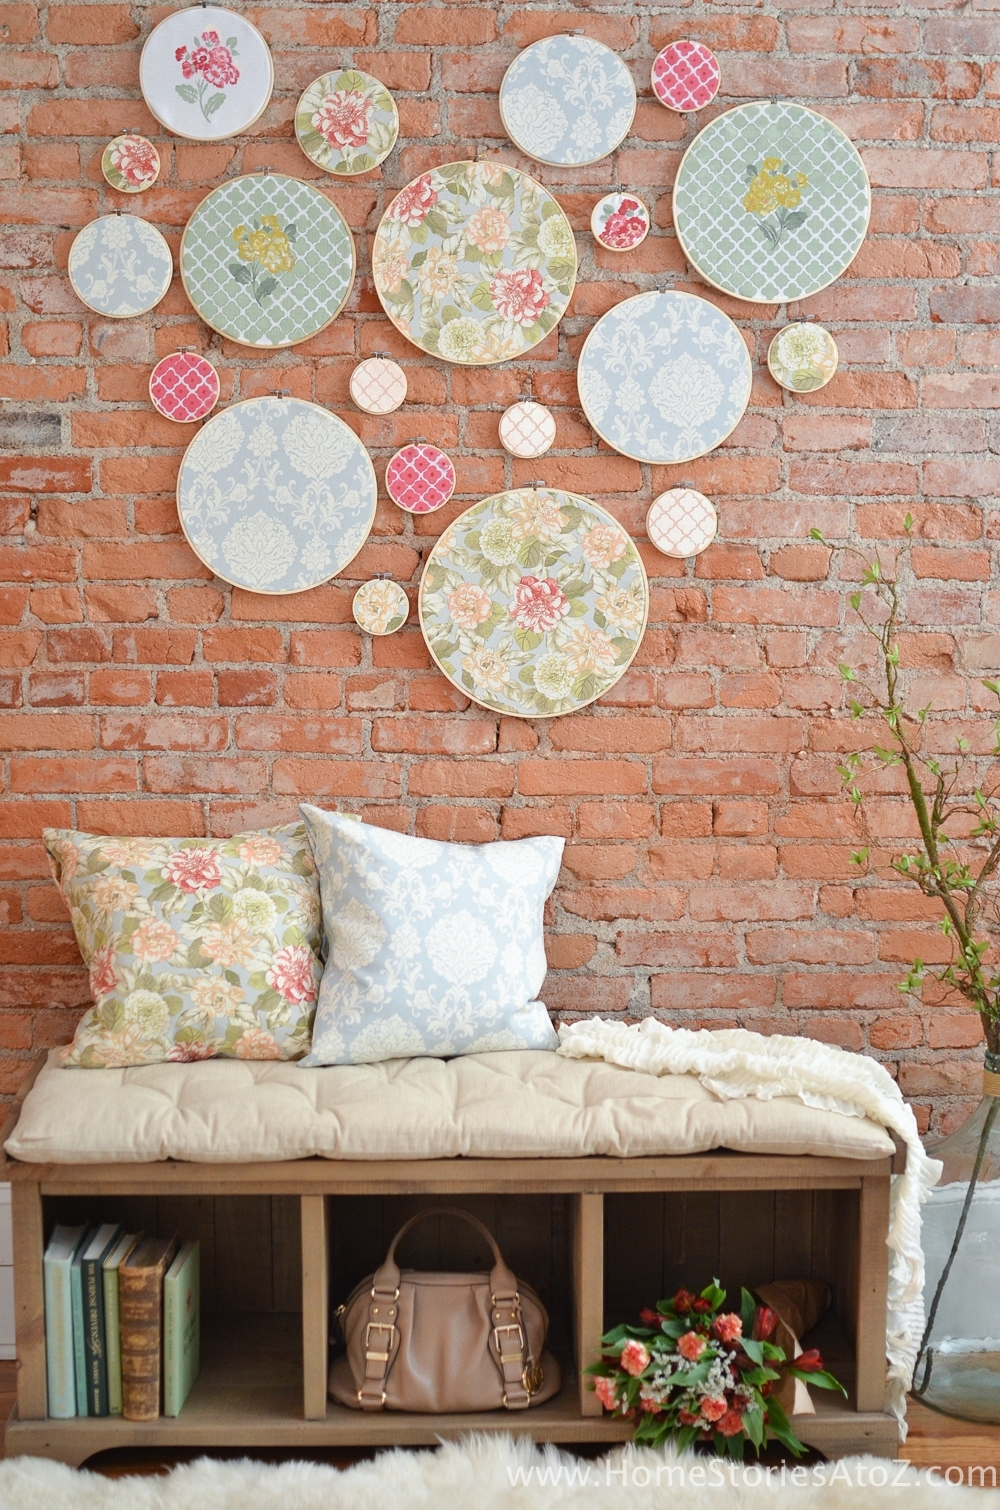 Diy Embroidery Hoop Wall Art – Home Stories A To Z For Most Popular Embroidery Hoop Fabric Wall Art (Gallery 6 of 15)